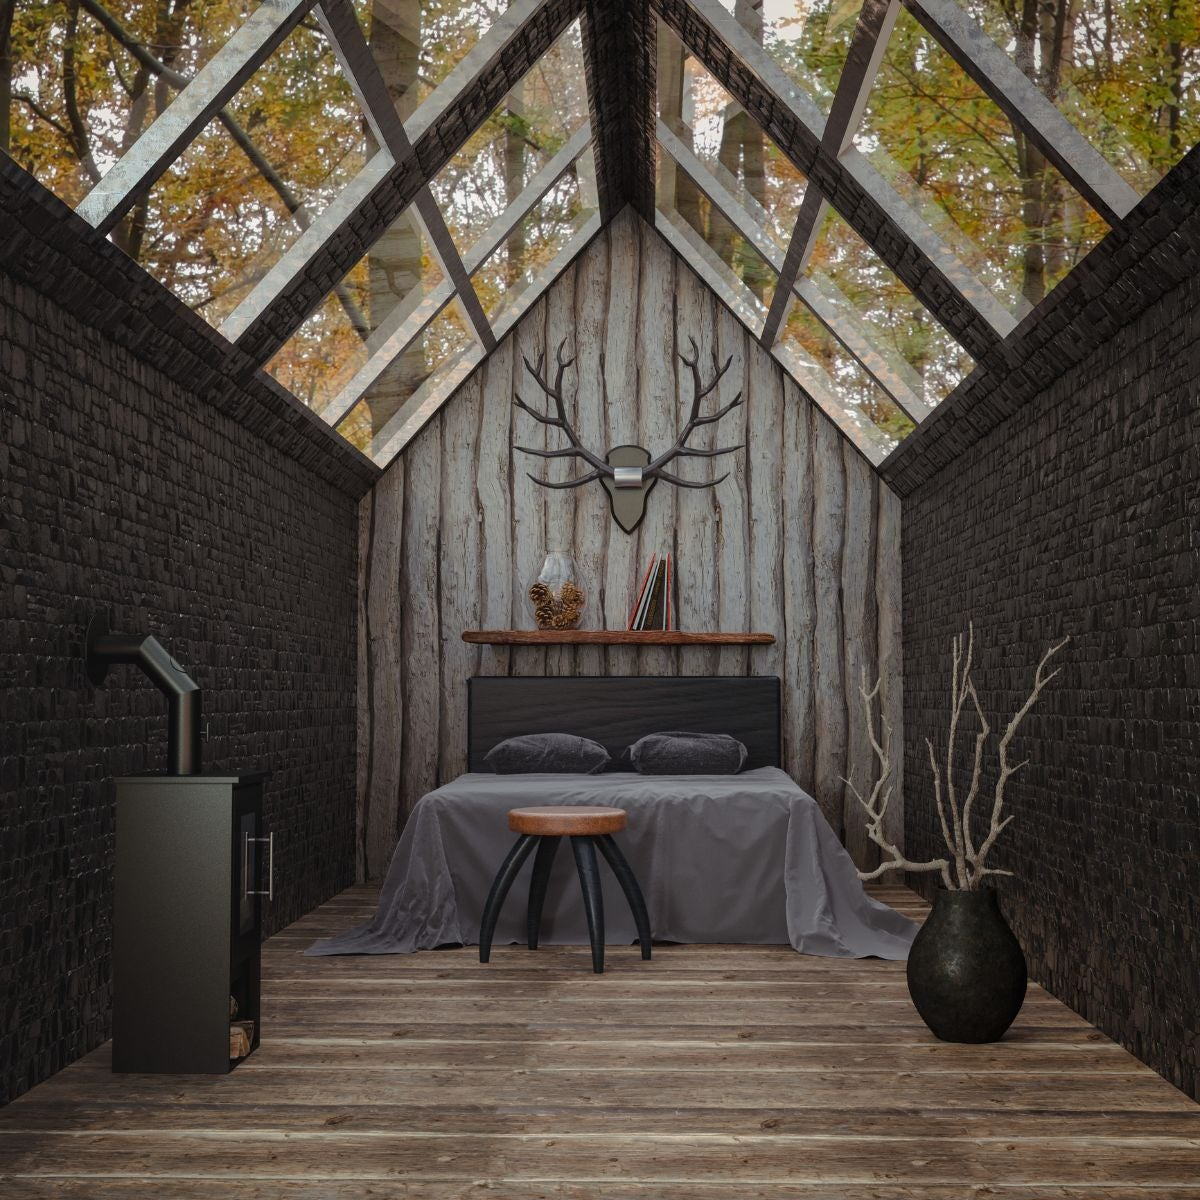 A smaller, cabin-inspired room with a skylight over head, a piece of deer decor above the bed, a stool in front of the bed, and a large pot full of tree branches to the left of the bed